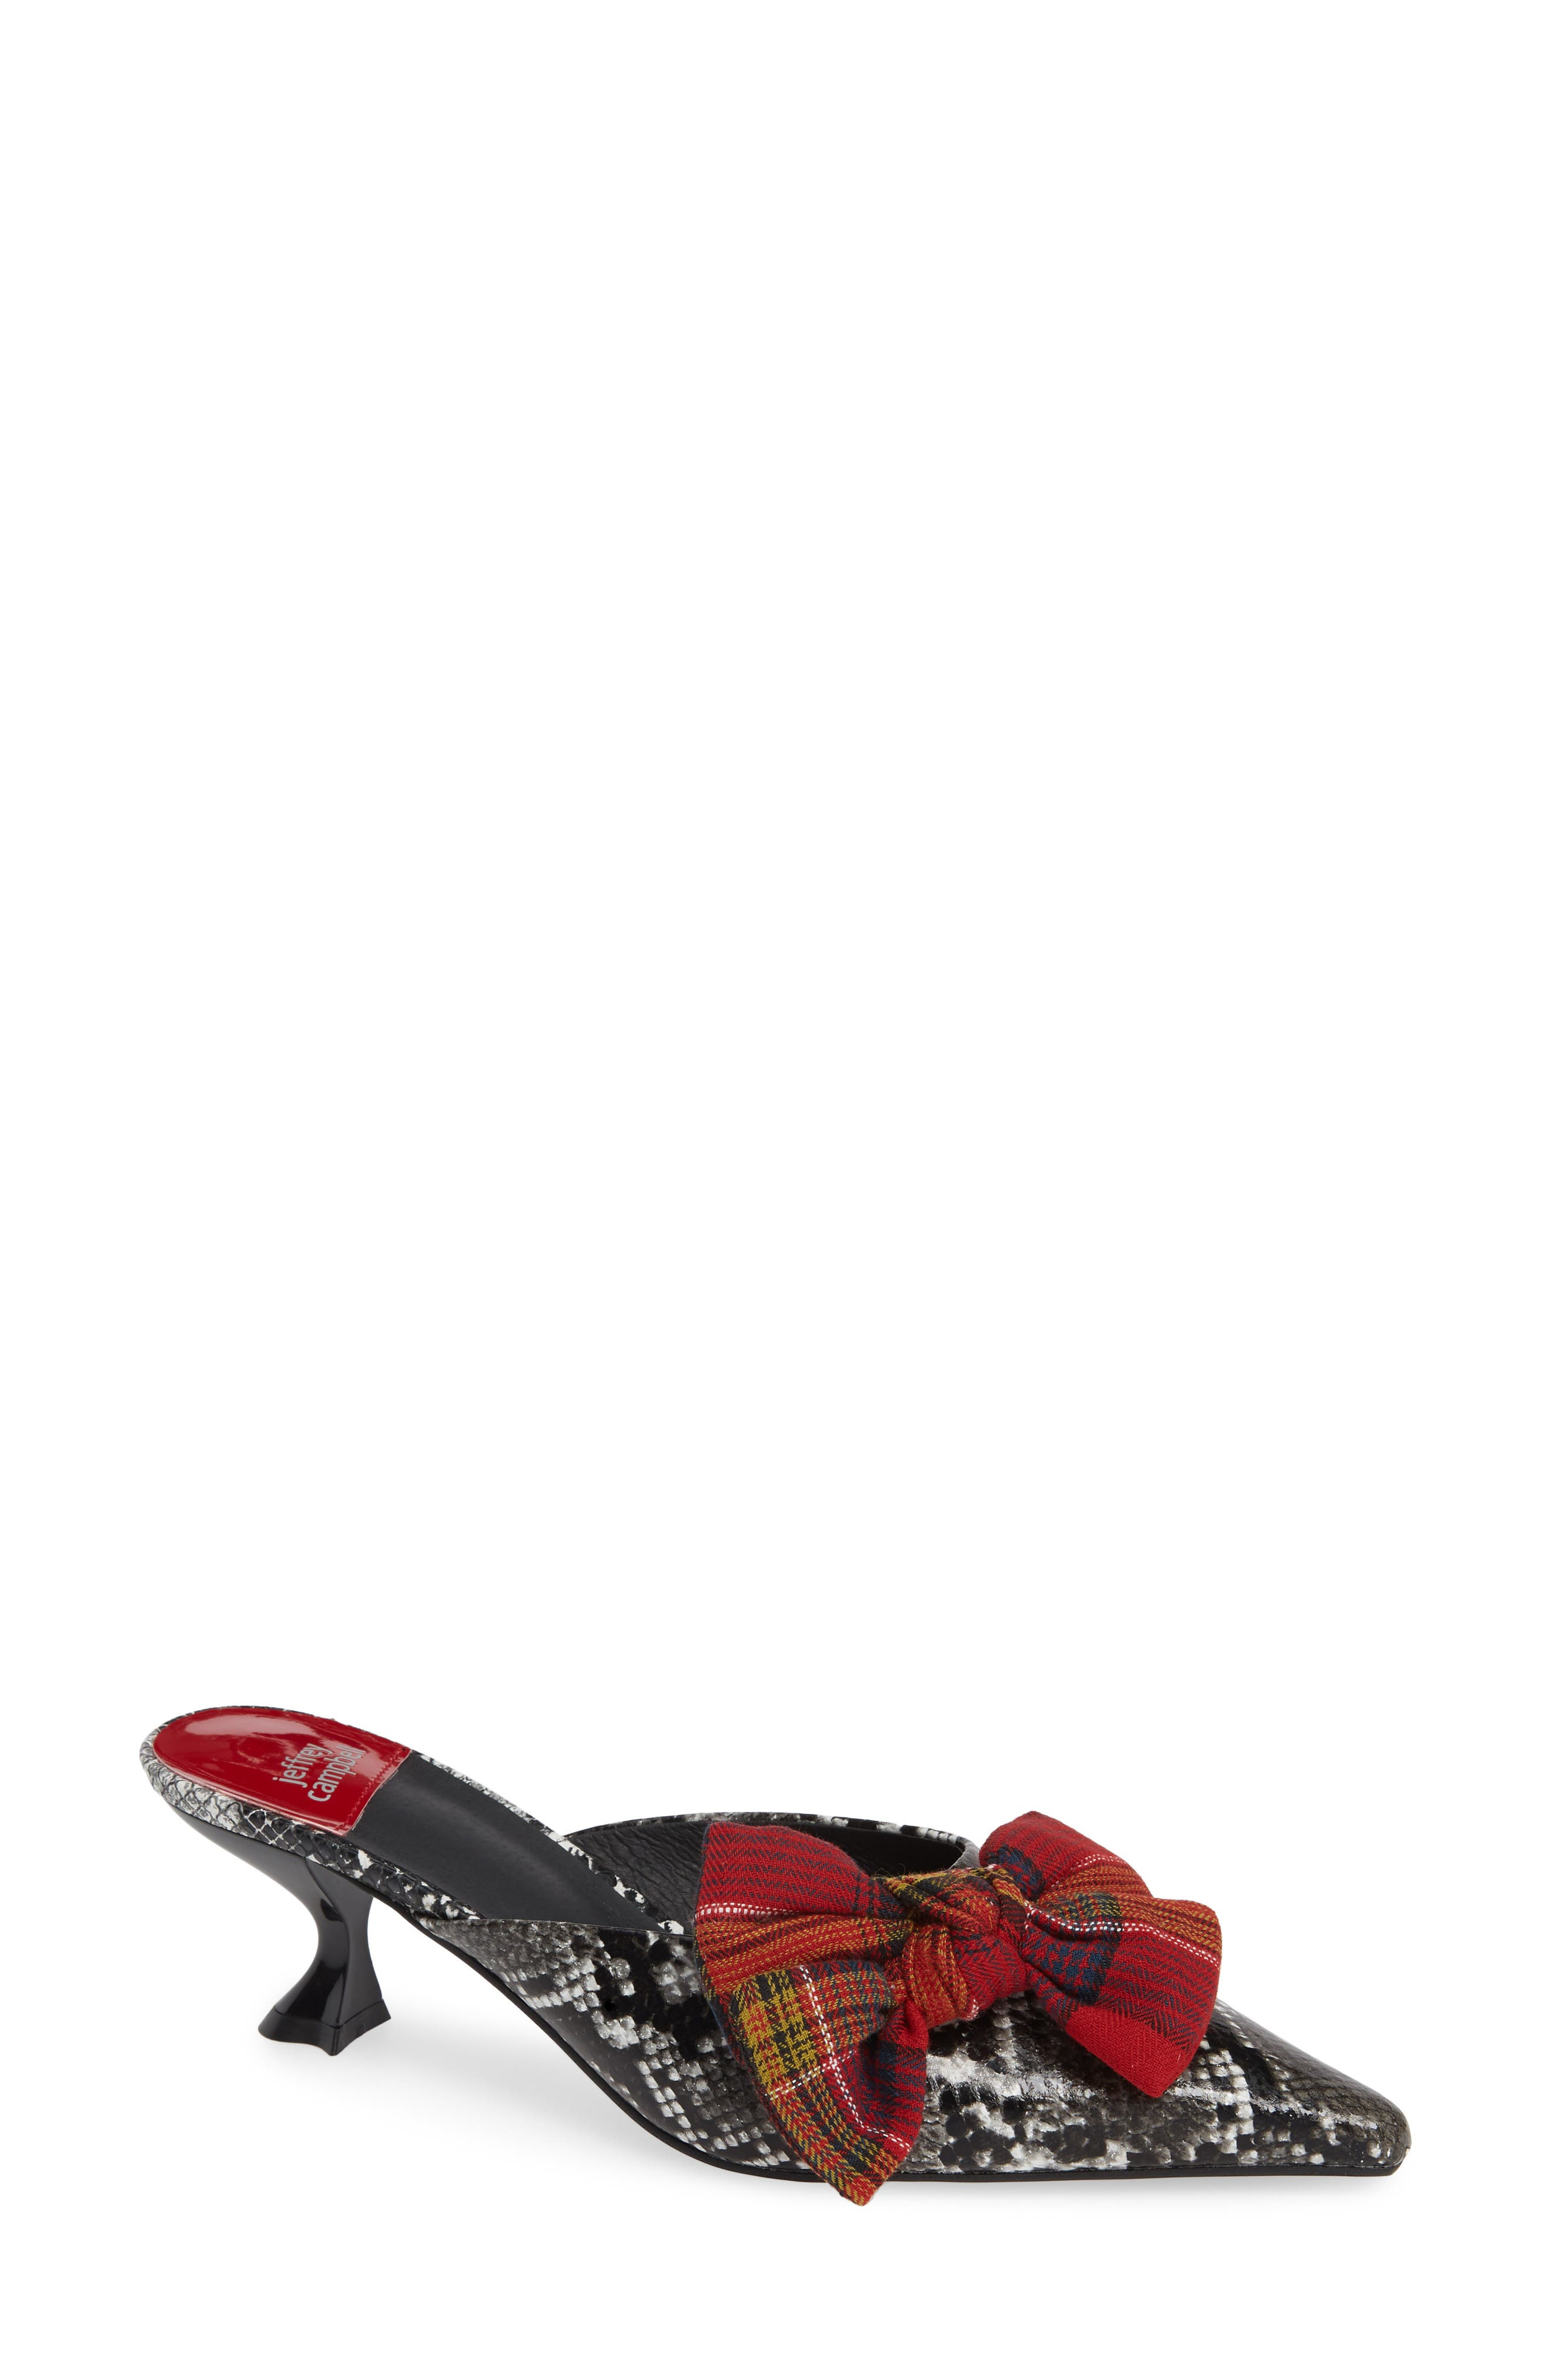 JEFFREY CAMPBELL Adorn Pointy Toe Mule, Main, color, GREY BLACK SNAKE / RED PLAID